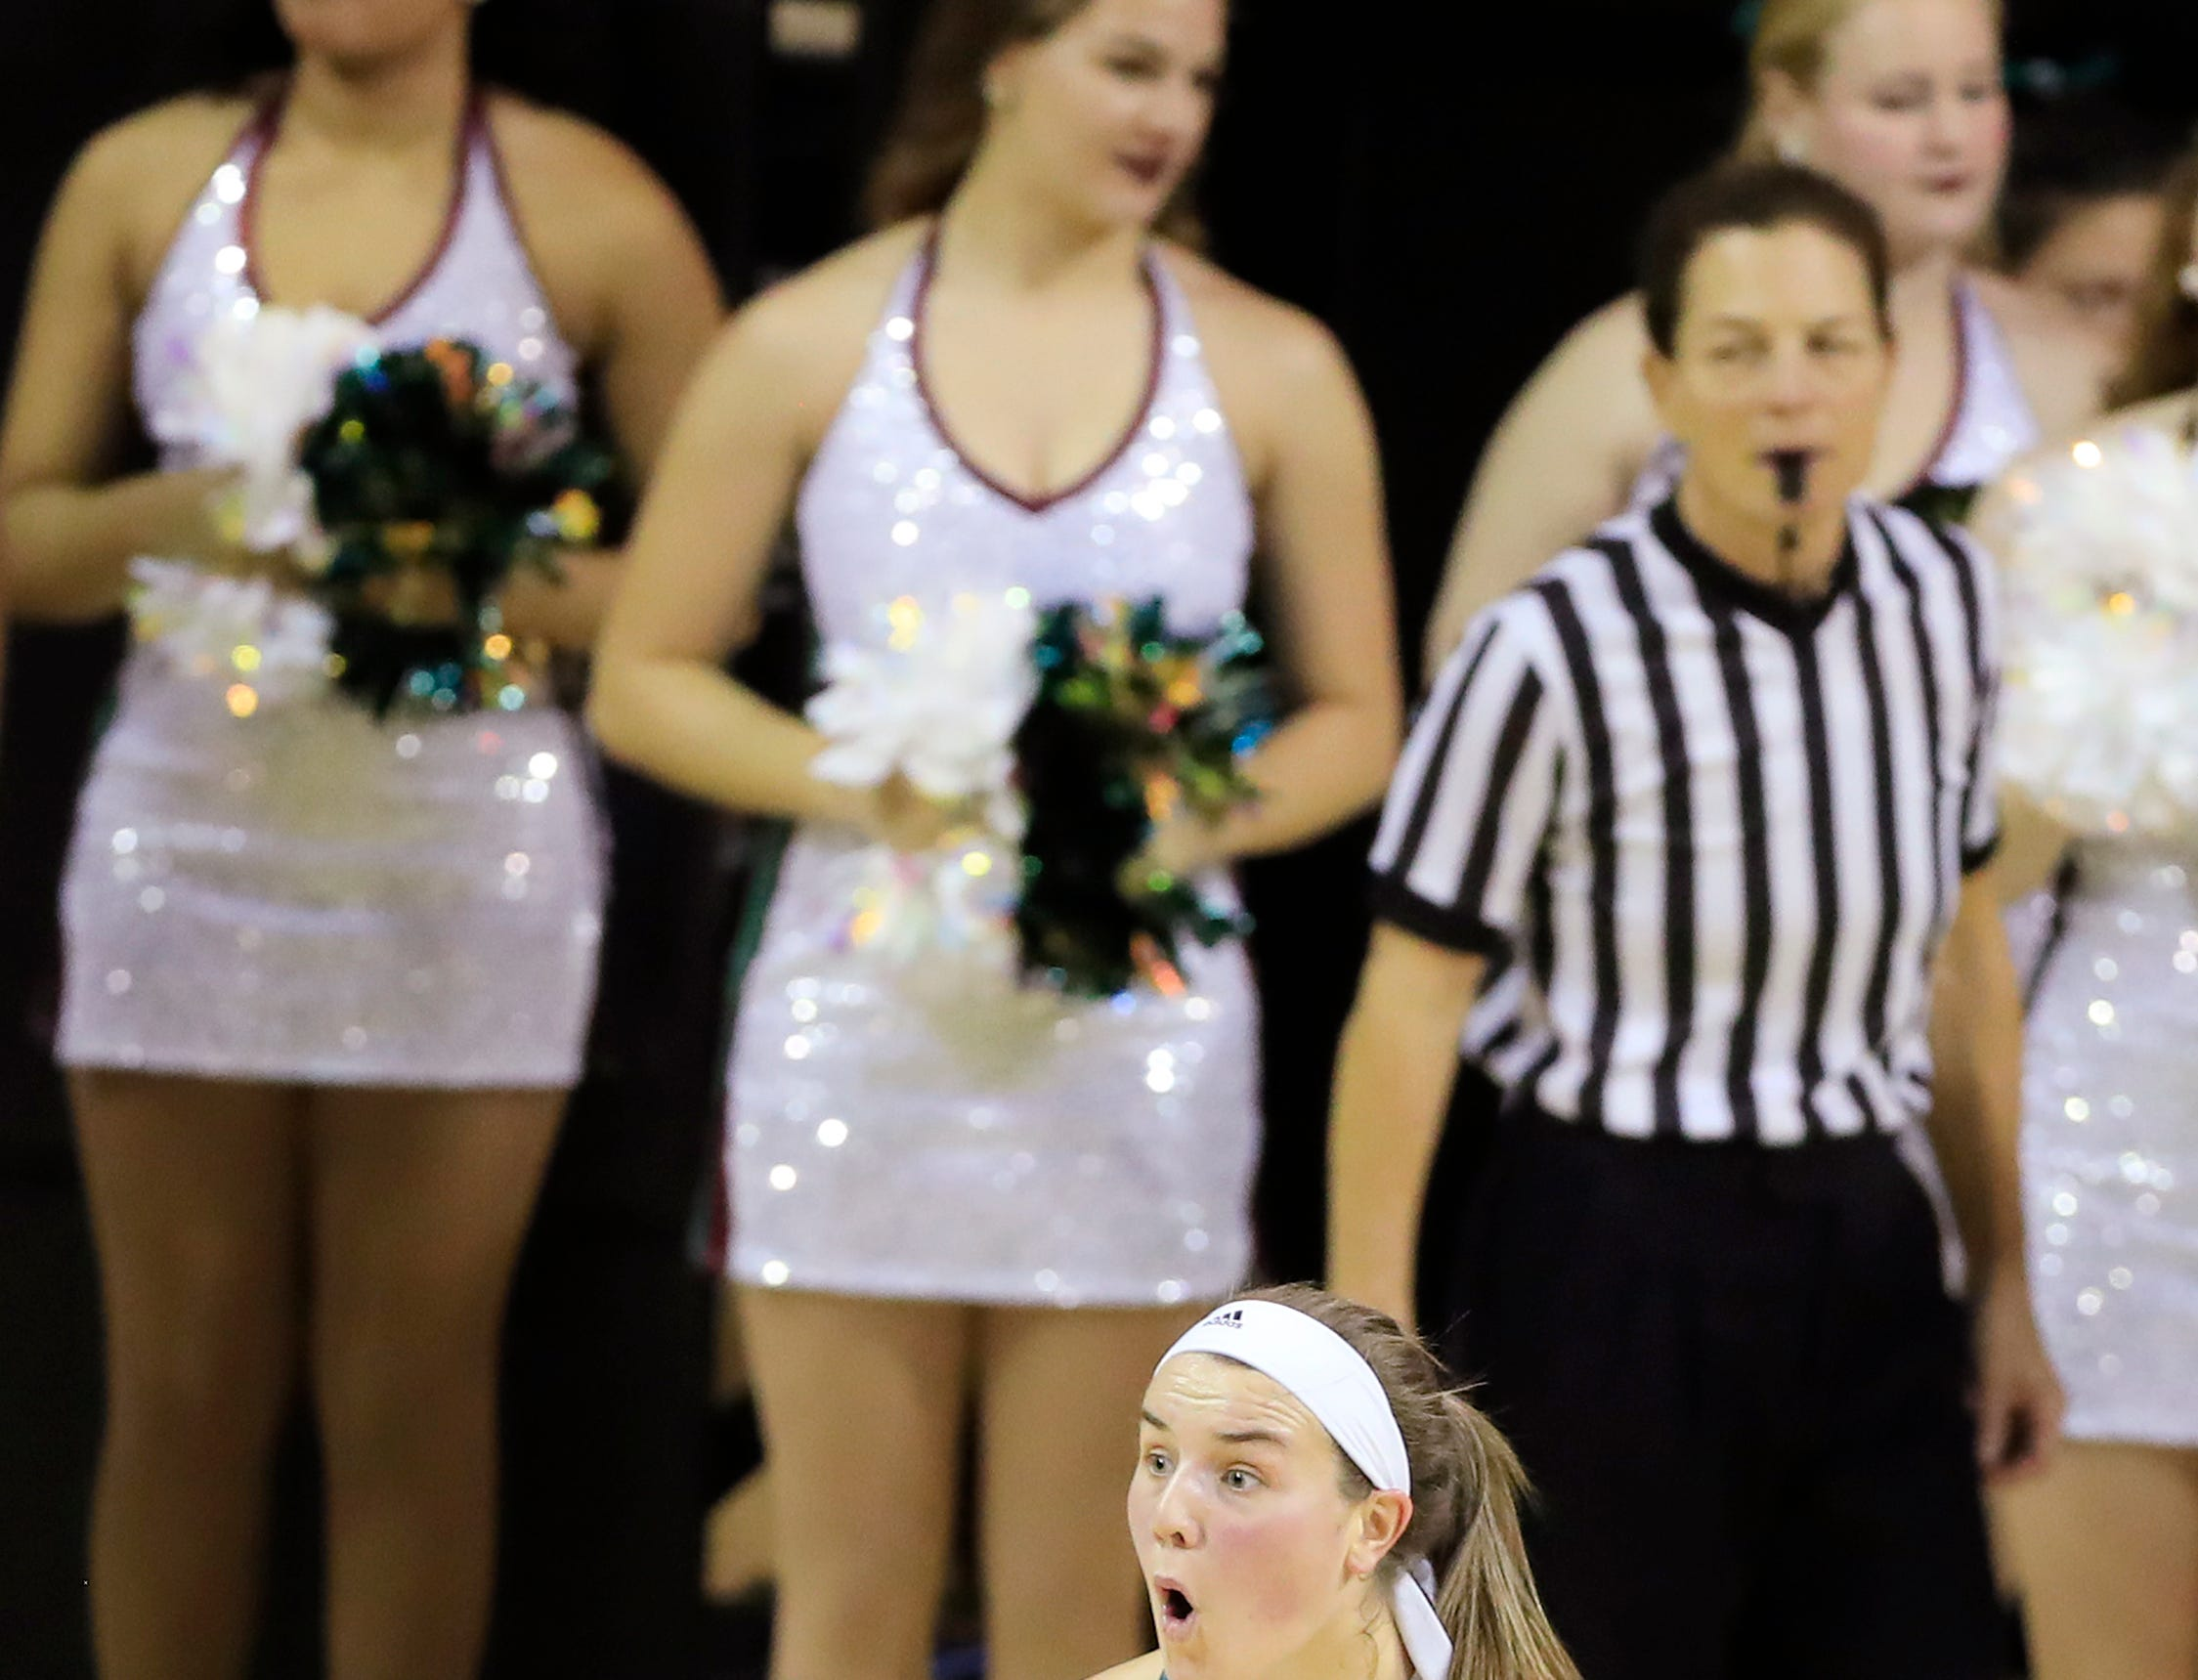 Green Bay Phoenix guard/forward Lyndsey Robson (25) reacts after a foul call in a women's NCAA basketball game against the Northwestern Wildcats at the Kress Center on Tuesday, November 6, 2018 in Green Bay, Wis.